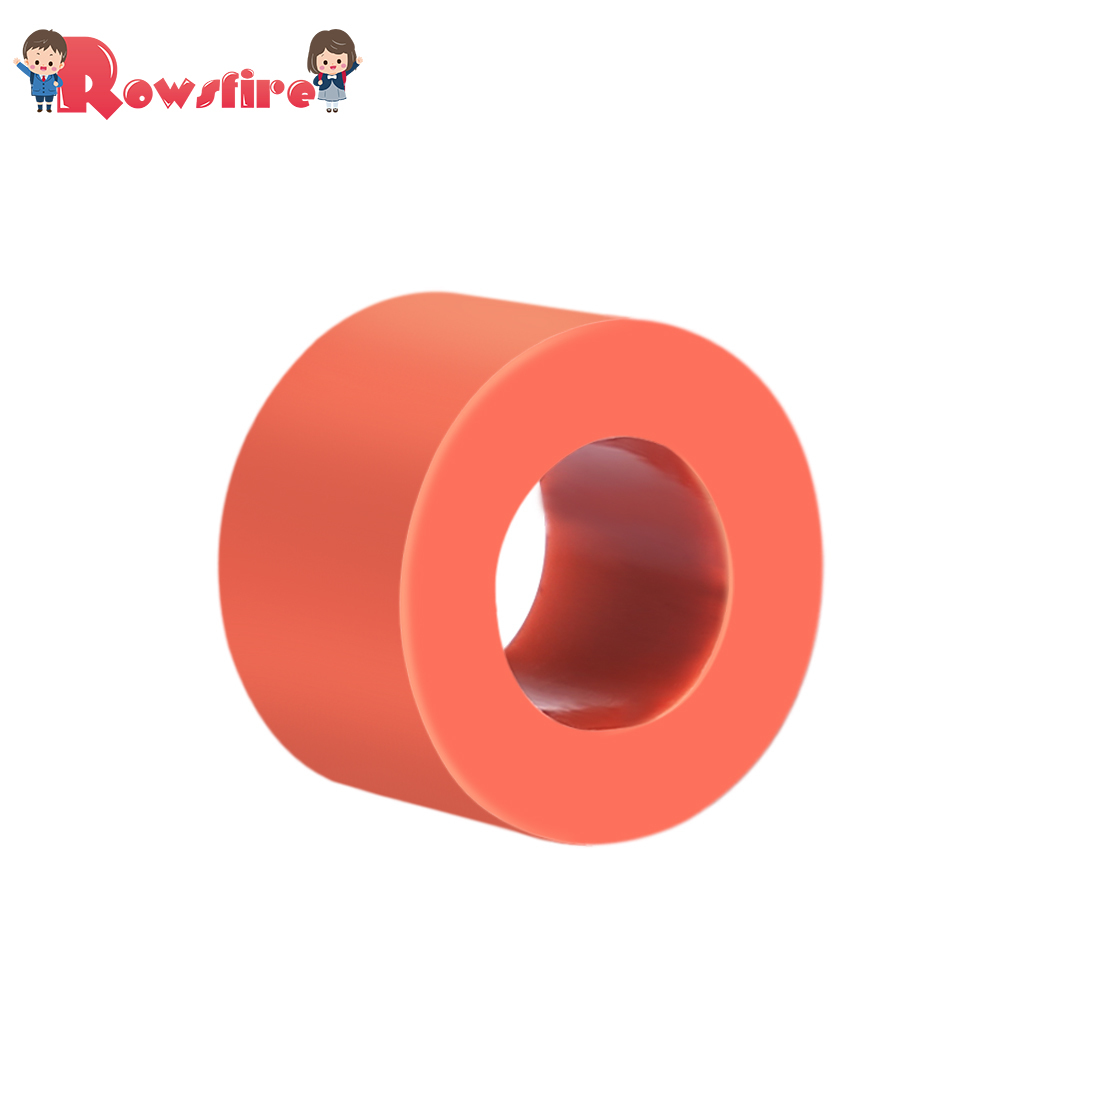 Wholesale Price 9.5mm Outer Barrel Accurate Barrel Shock Absorption Stabilized Loop Stable Ring For Water Gel Beads Blaster